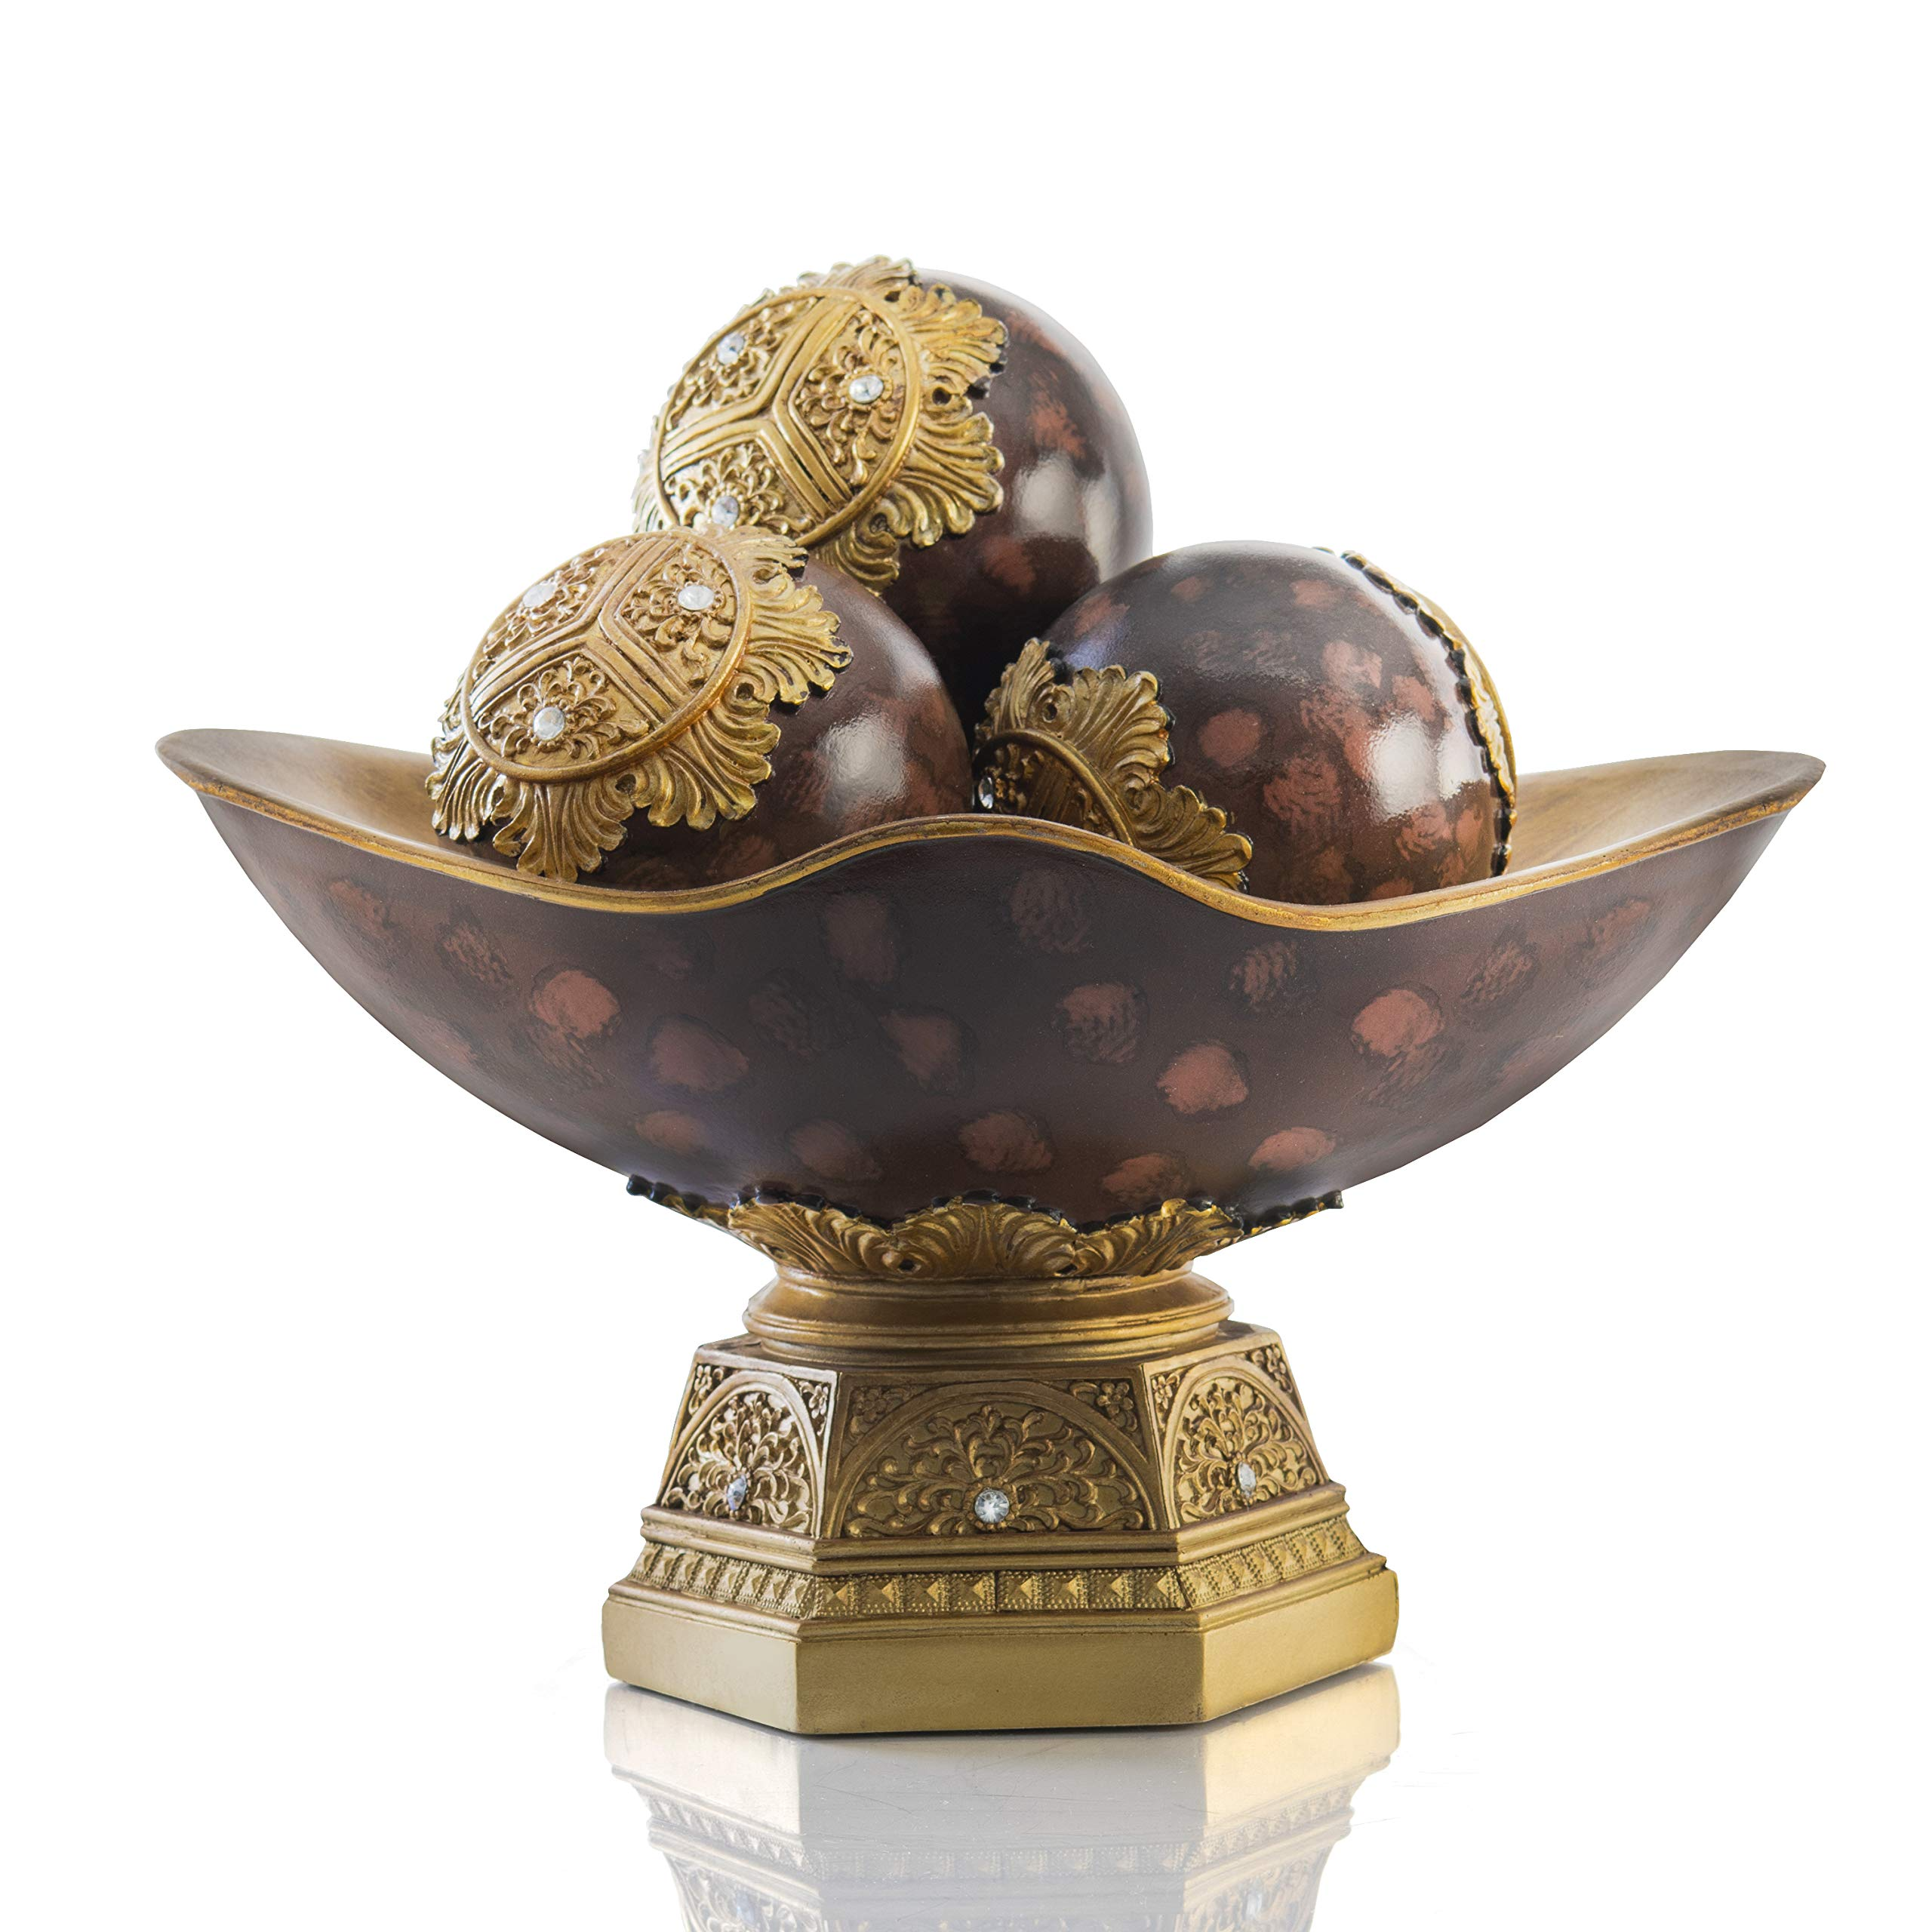 Emenest Decorative Table Centerpiece | Home Decor Bowl and Orbs Set of 4 | Prime Gifting Idea | Mantle with Spheres| House Decorations Accents for Dining or Living Room |Gift Boxed – Cherry Brown Gold